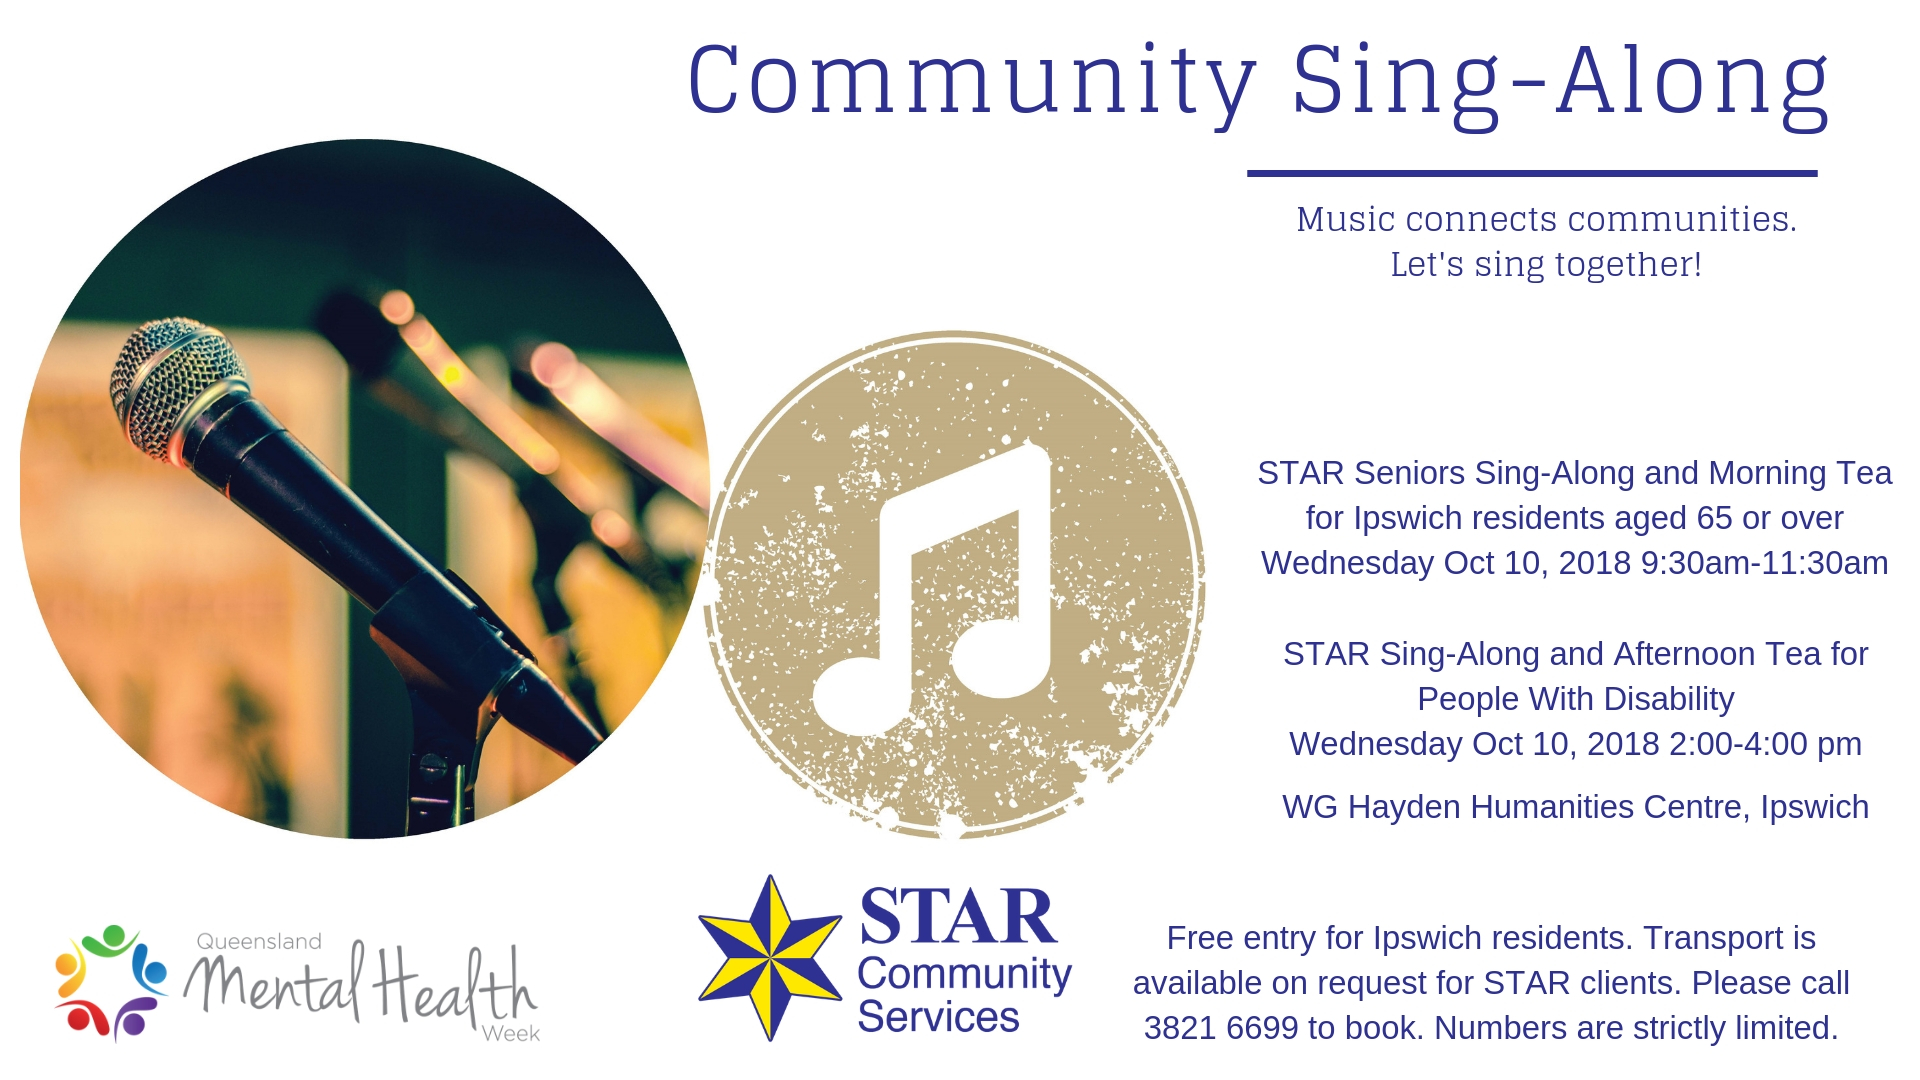 STAR Community Sing-Along